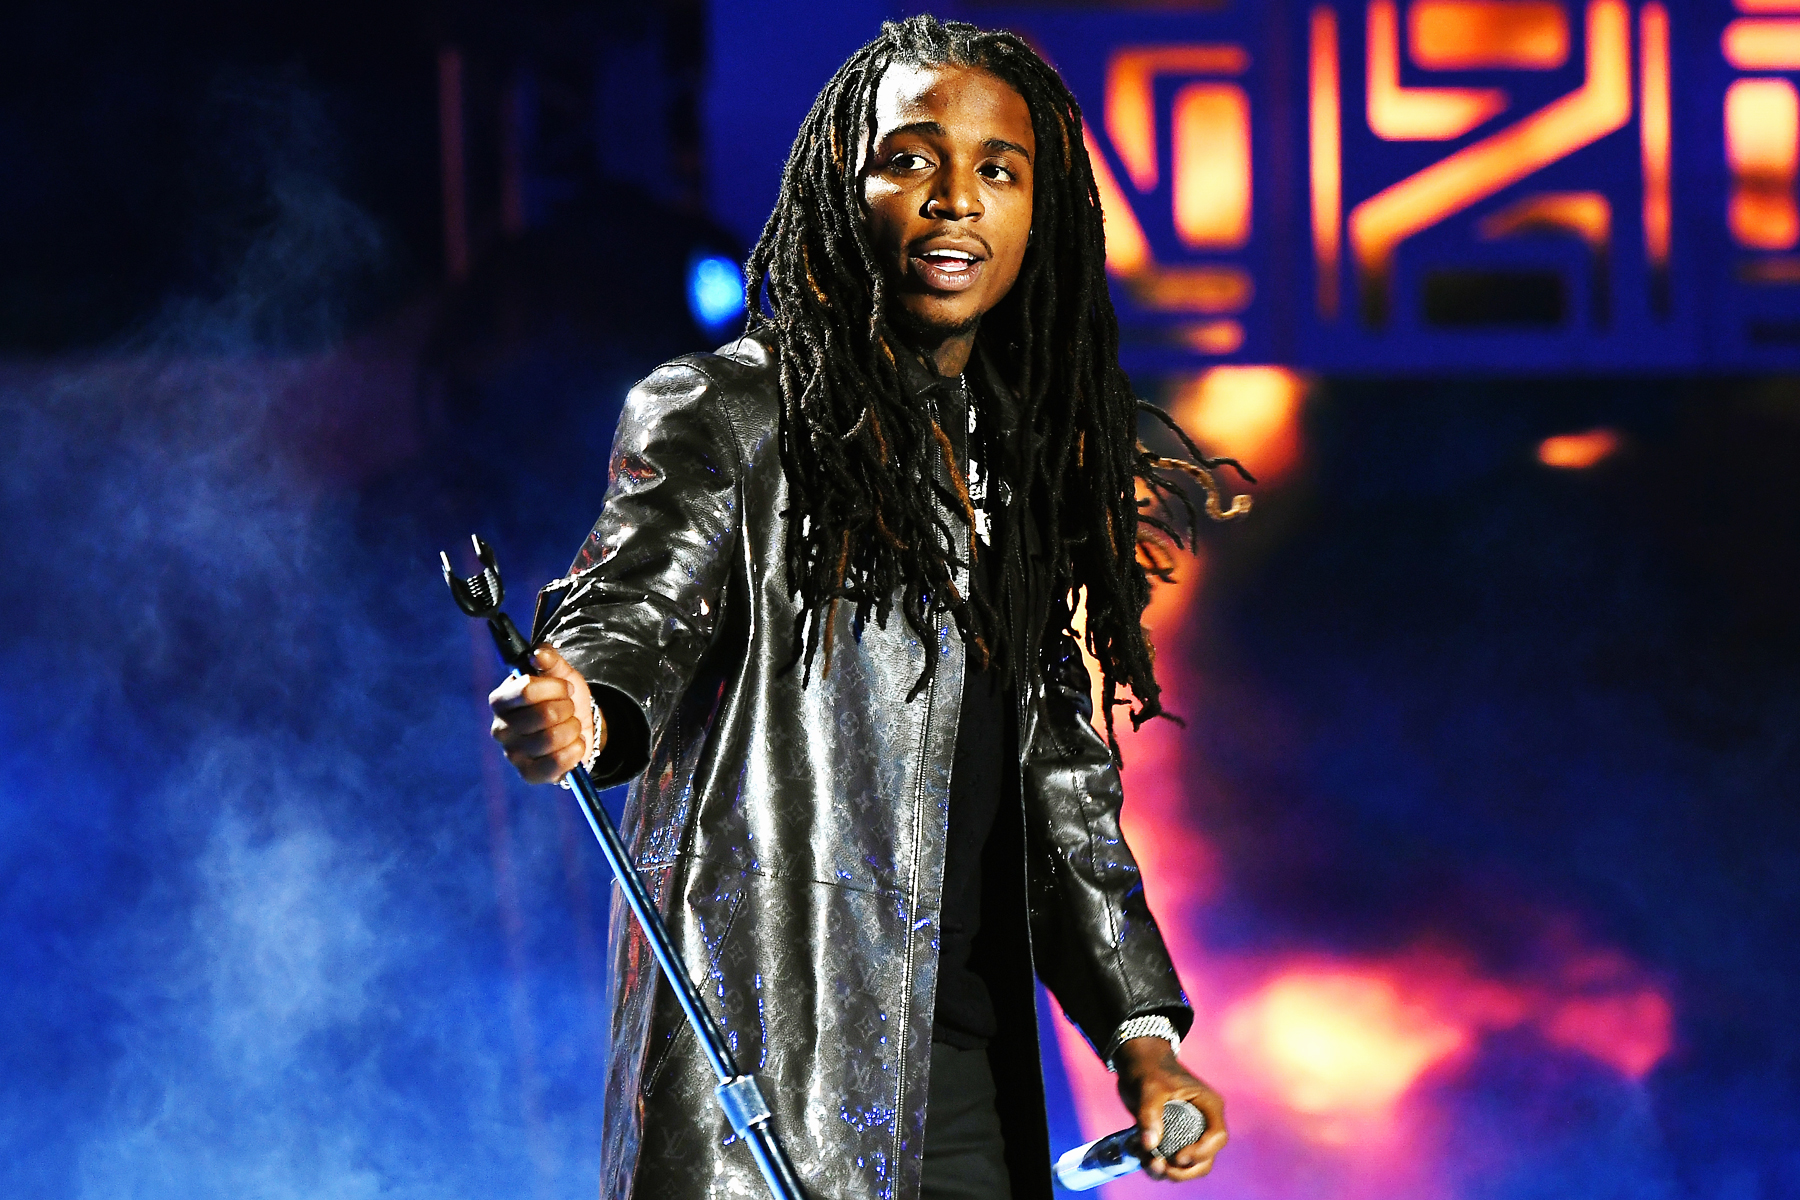 c5c8f5cae5 Jacquees Is The Self-Proclaimed King of R B (Maybe He s Right ...